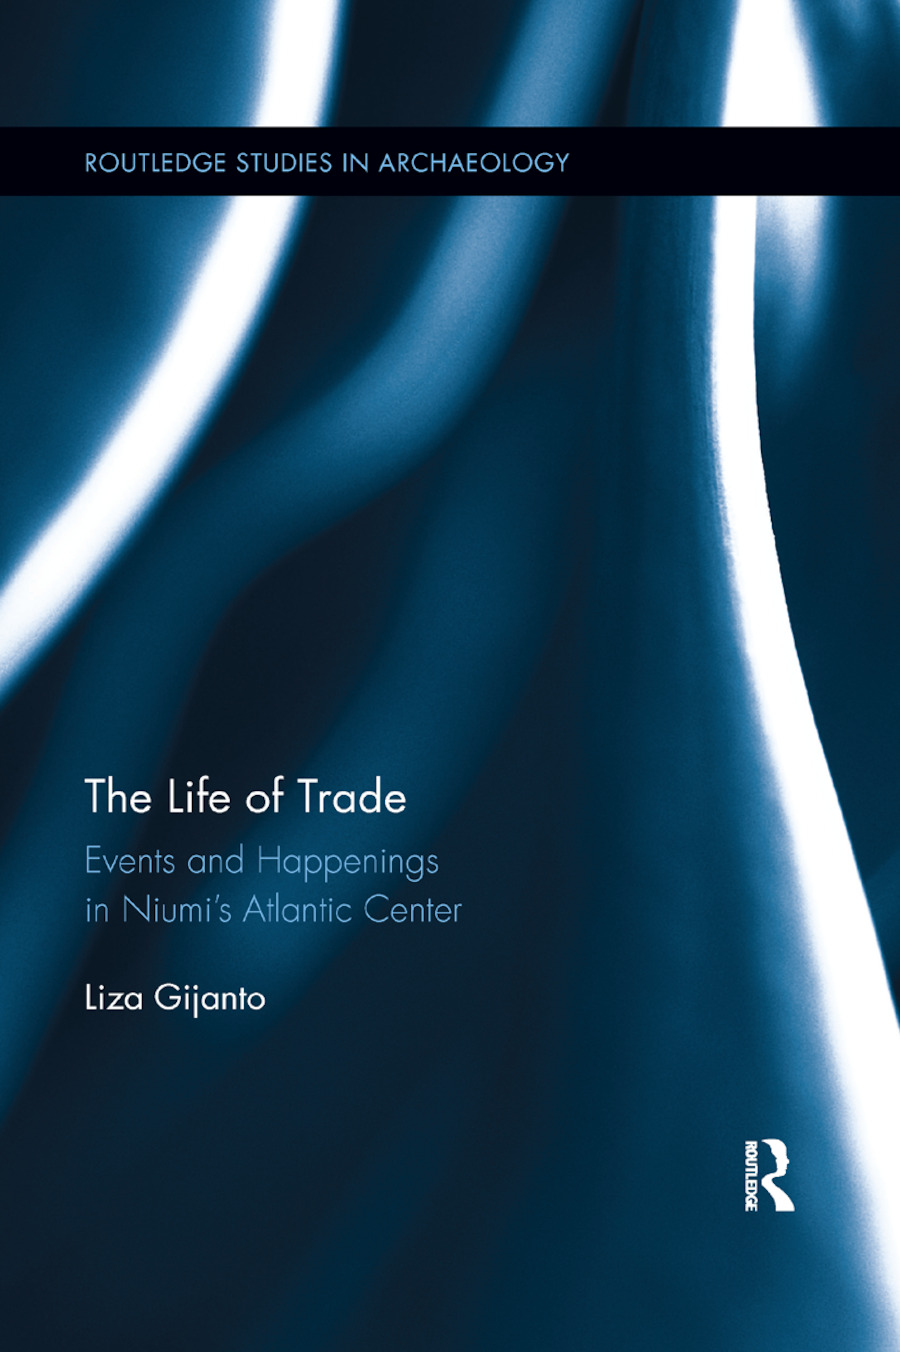 The Life of Trade